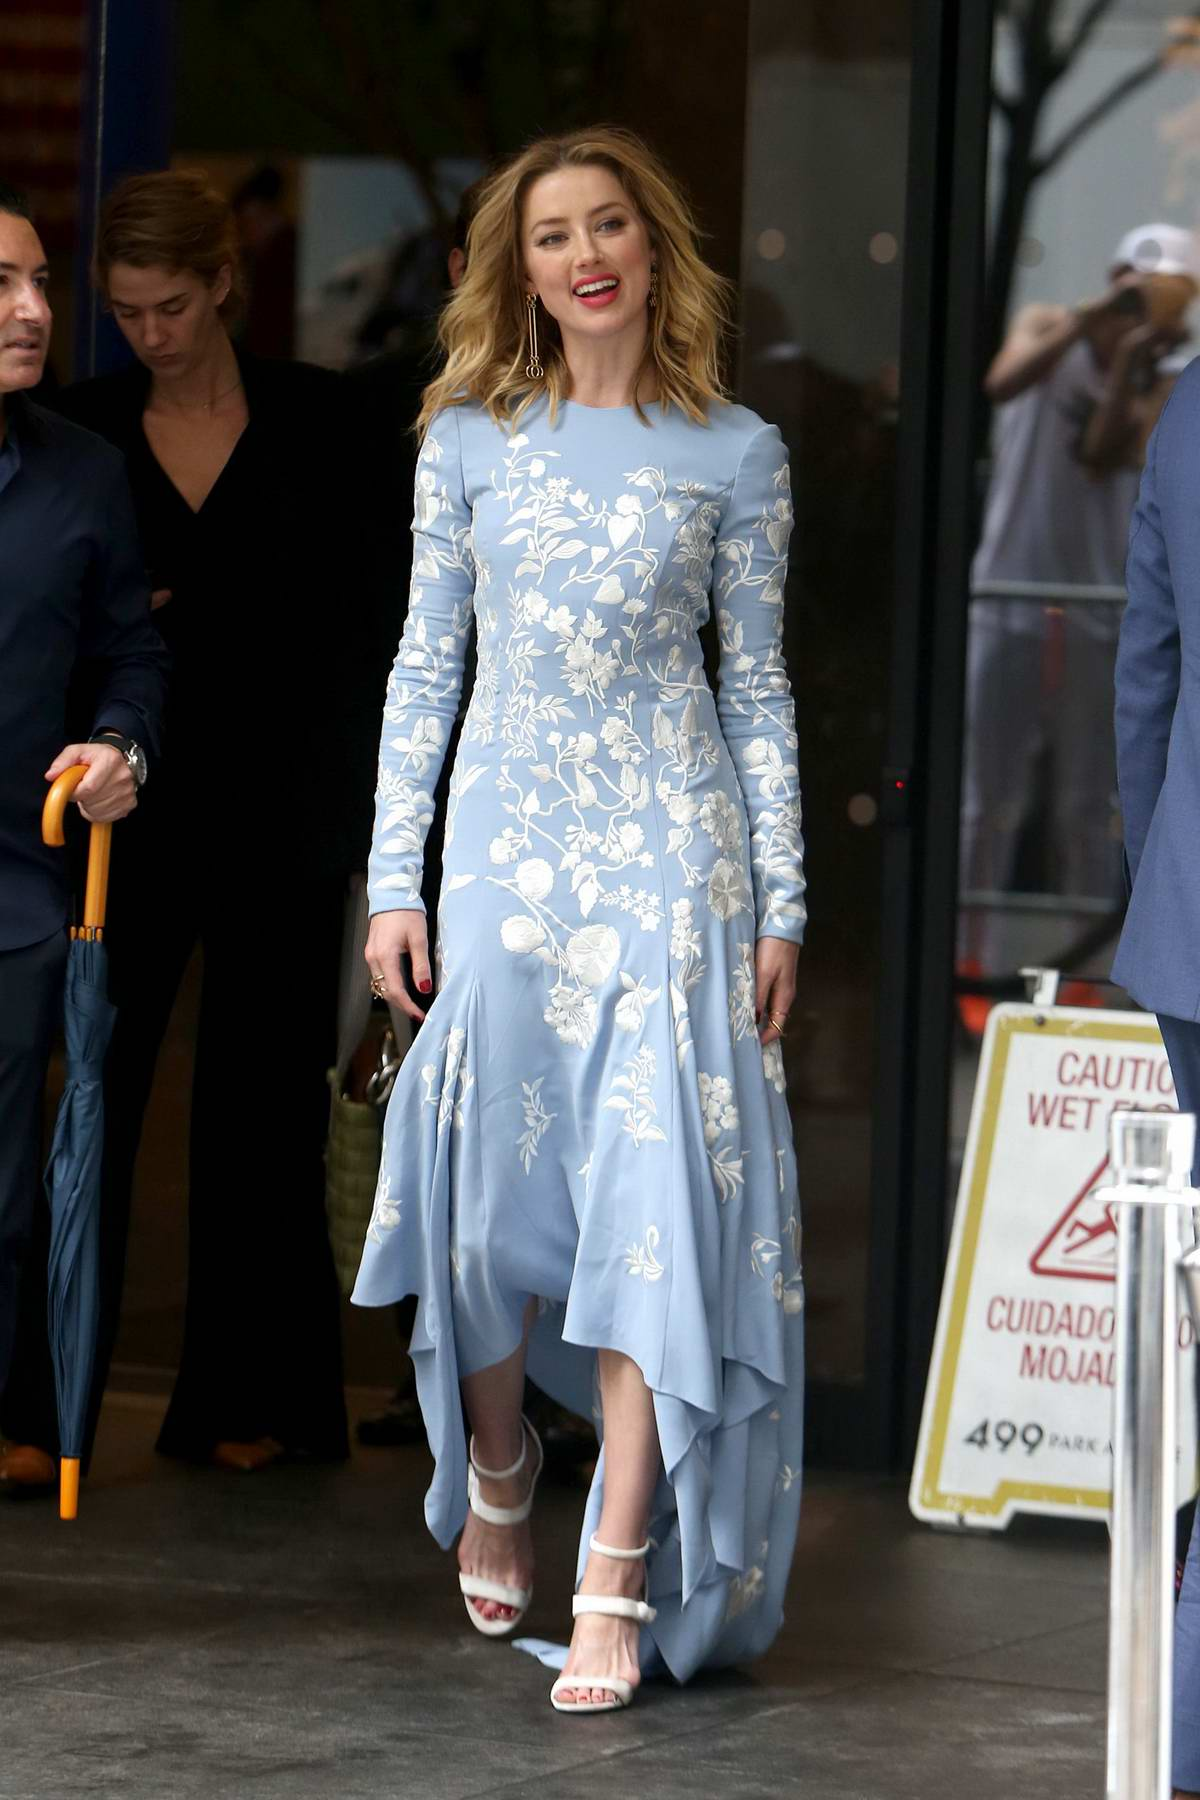 Amber Heard steps out in a baby blue dress to supports Cantor Charity Day on 9/11 in New York City